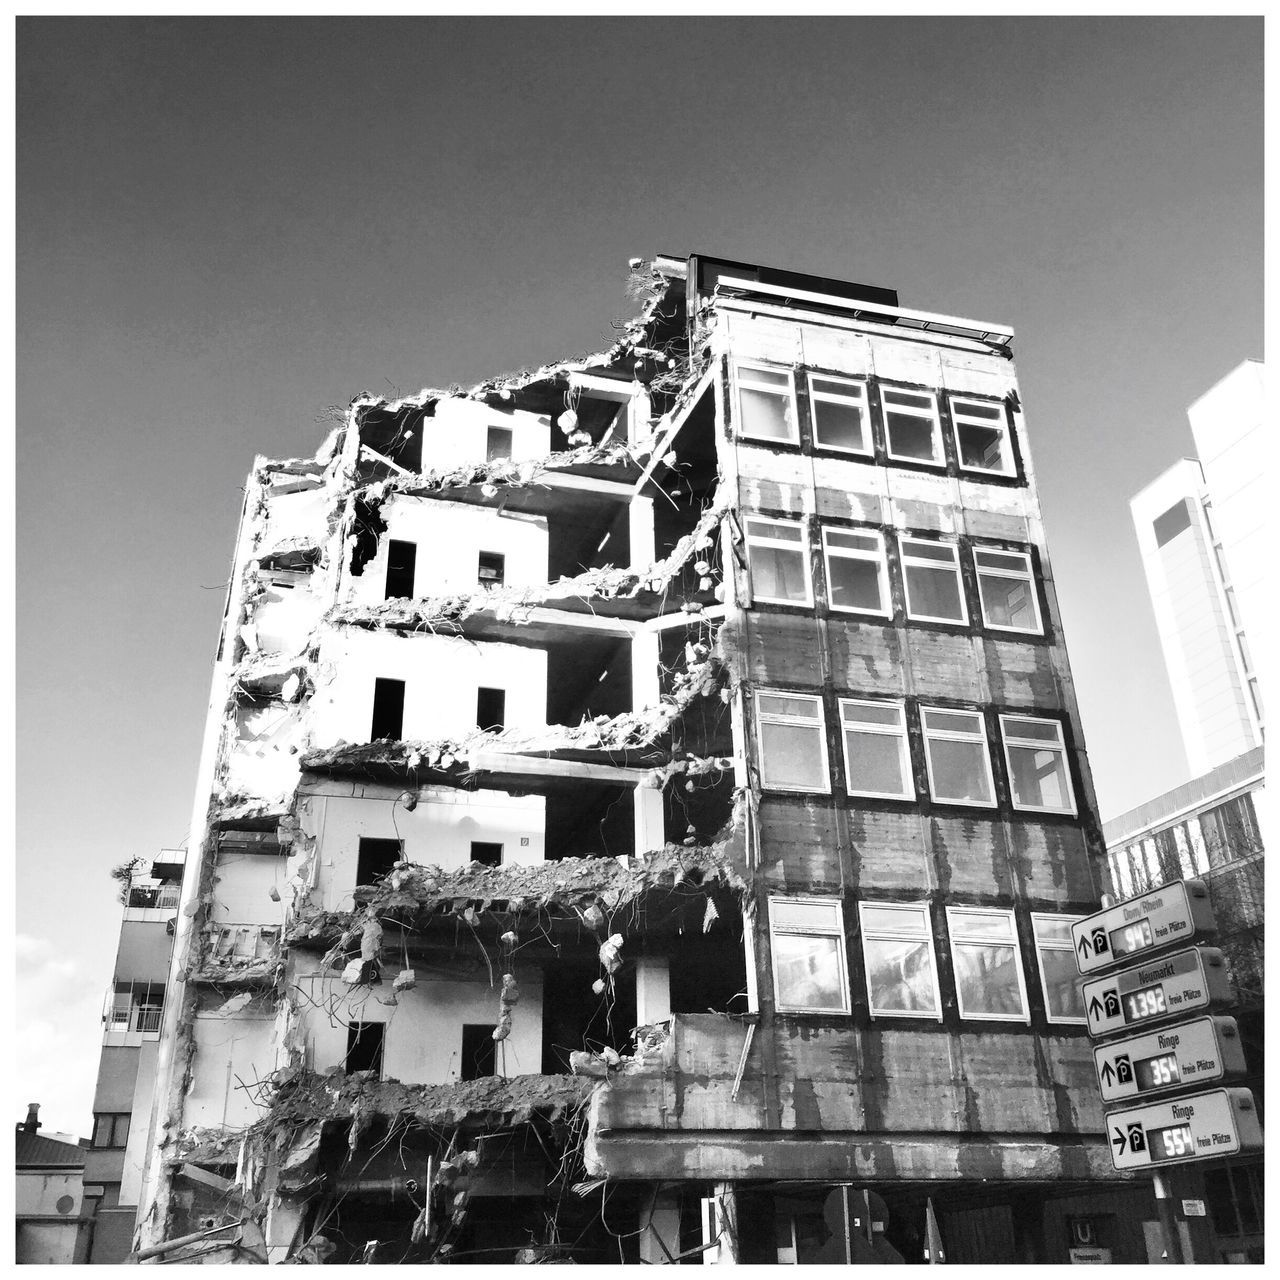 Architecture Building Exterior Low Angle View Built Structure Outdoors Day Clear Sky No People City Sky Demolition Blackandwhite